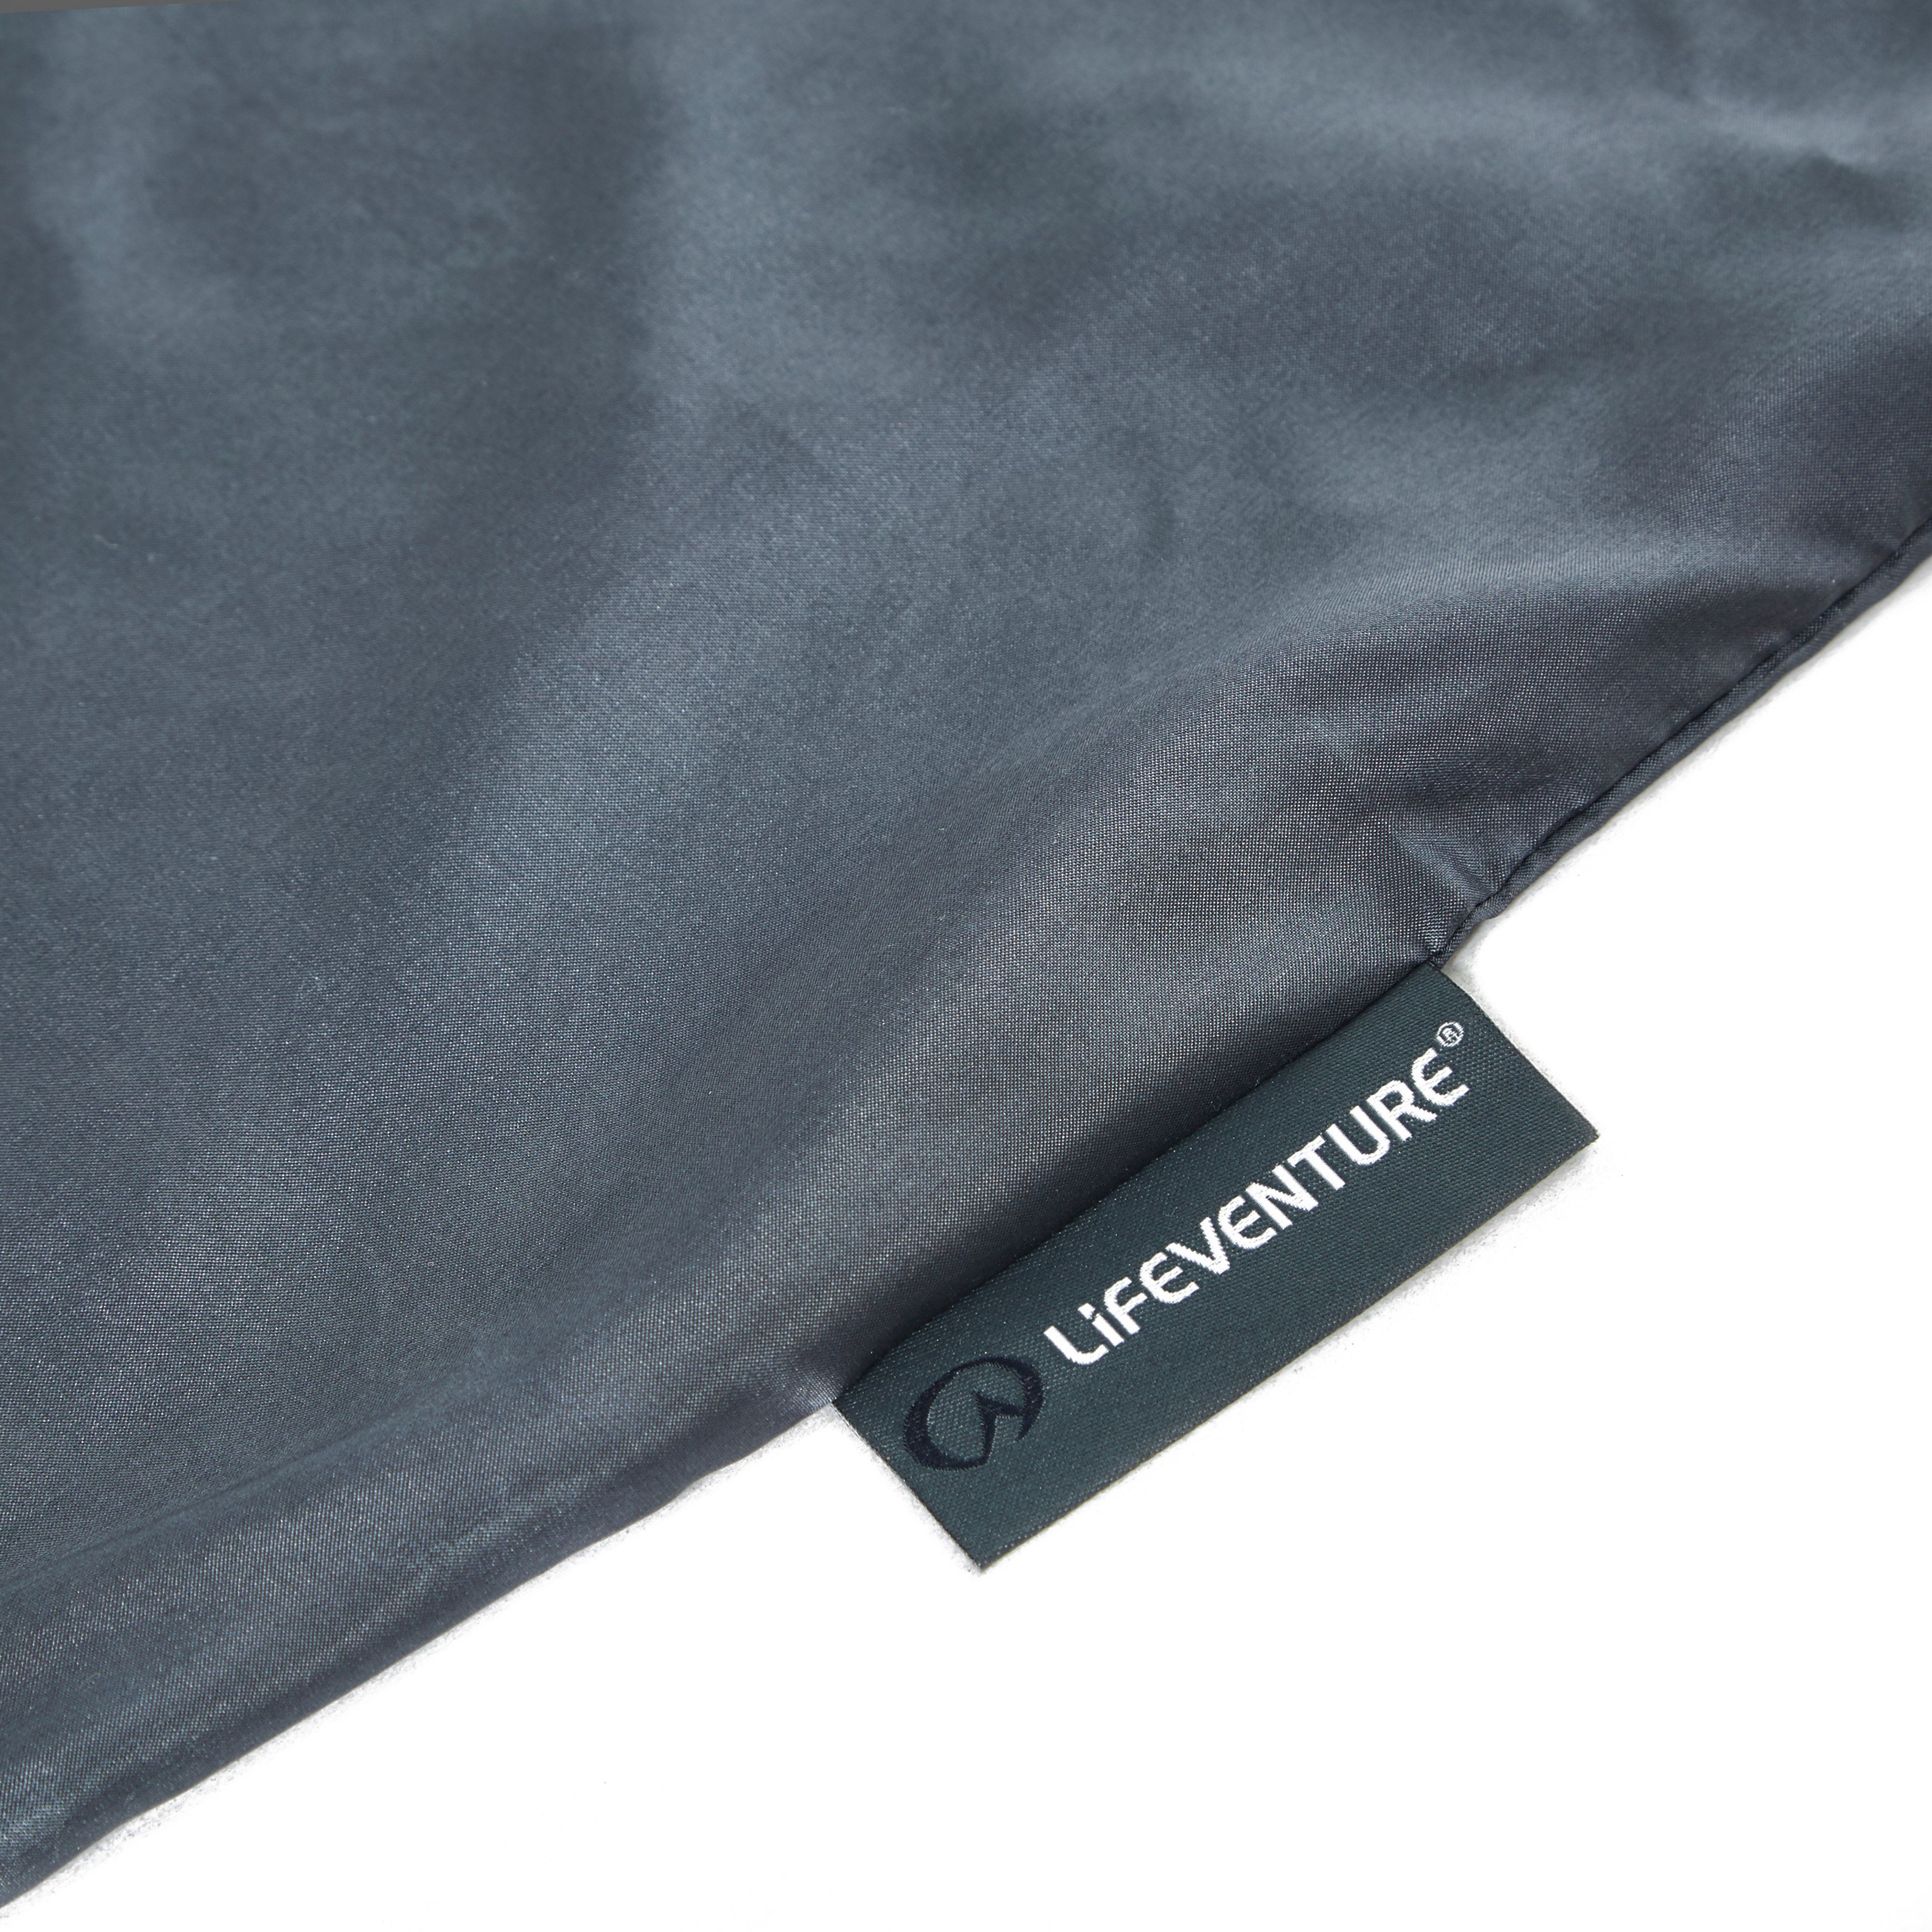 LIFEVENTURE Cotton Mum Sleeping Bag Liner